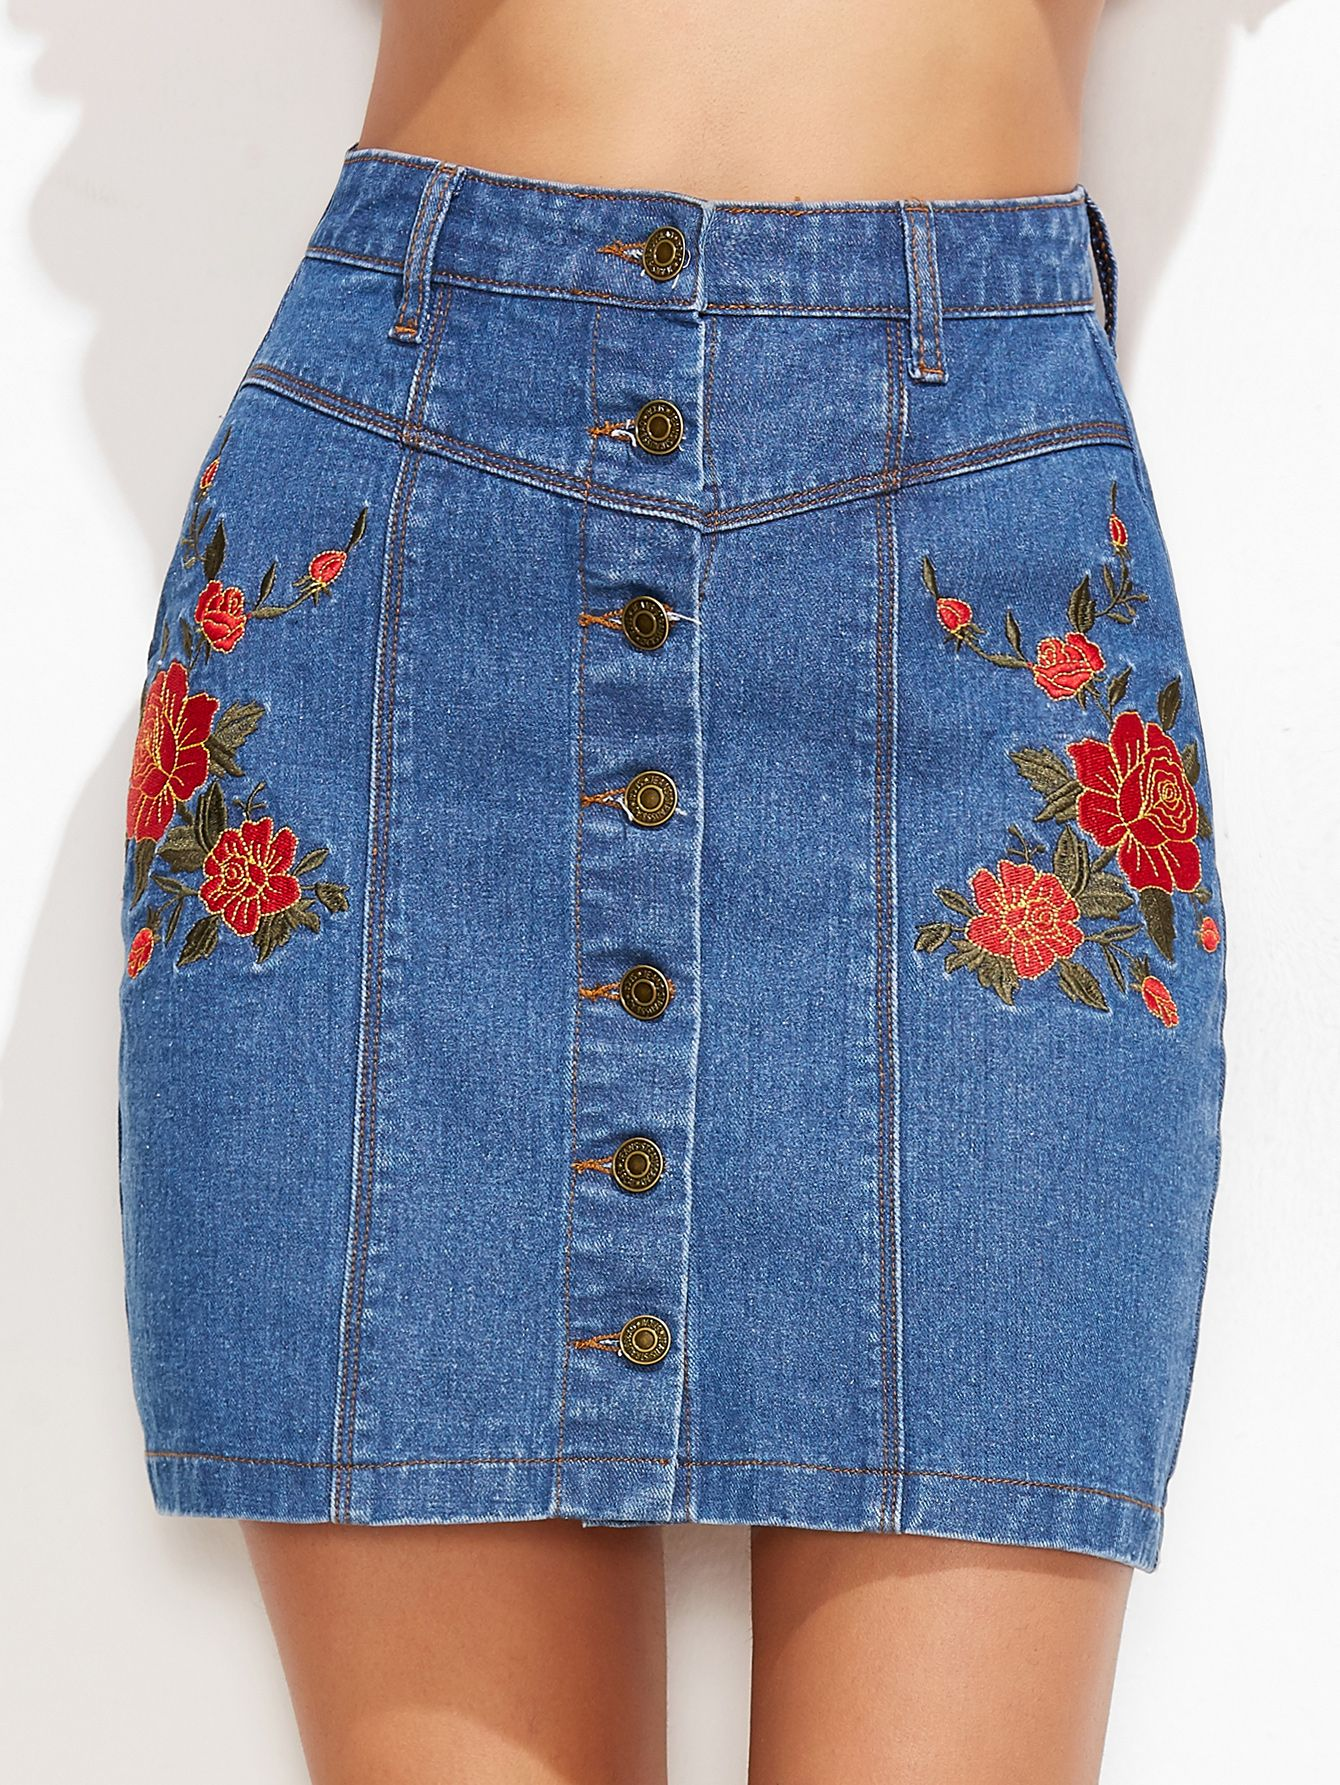 Embroidered Single Breasted Denim Skirt | Denim skirts online and ...